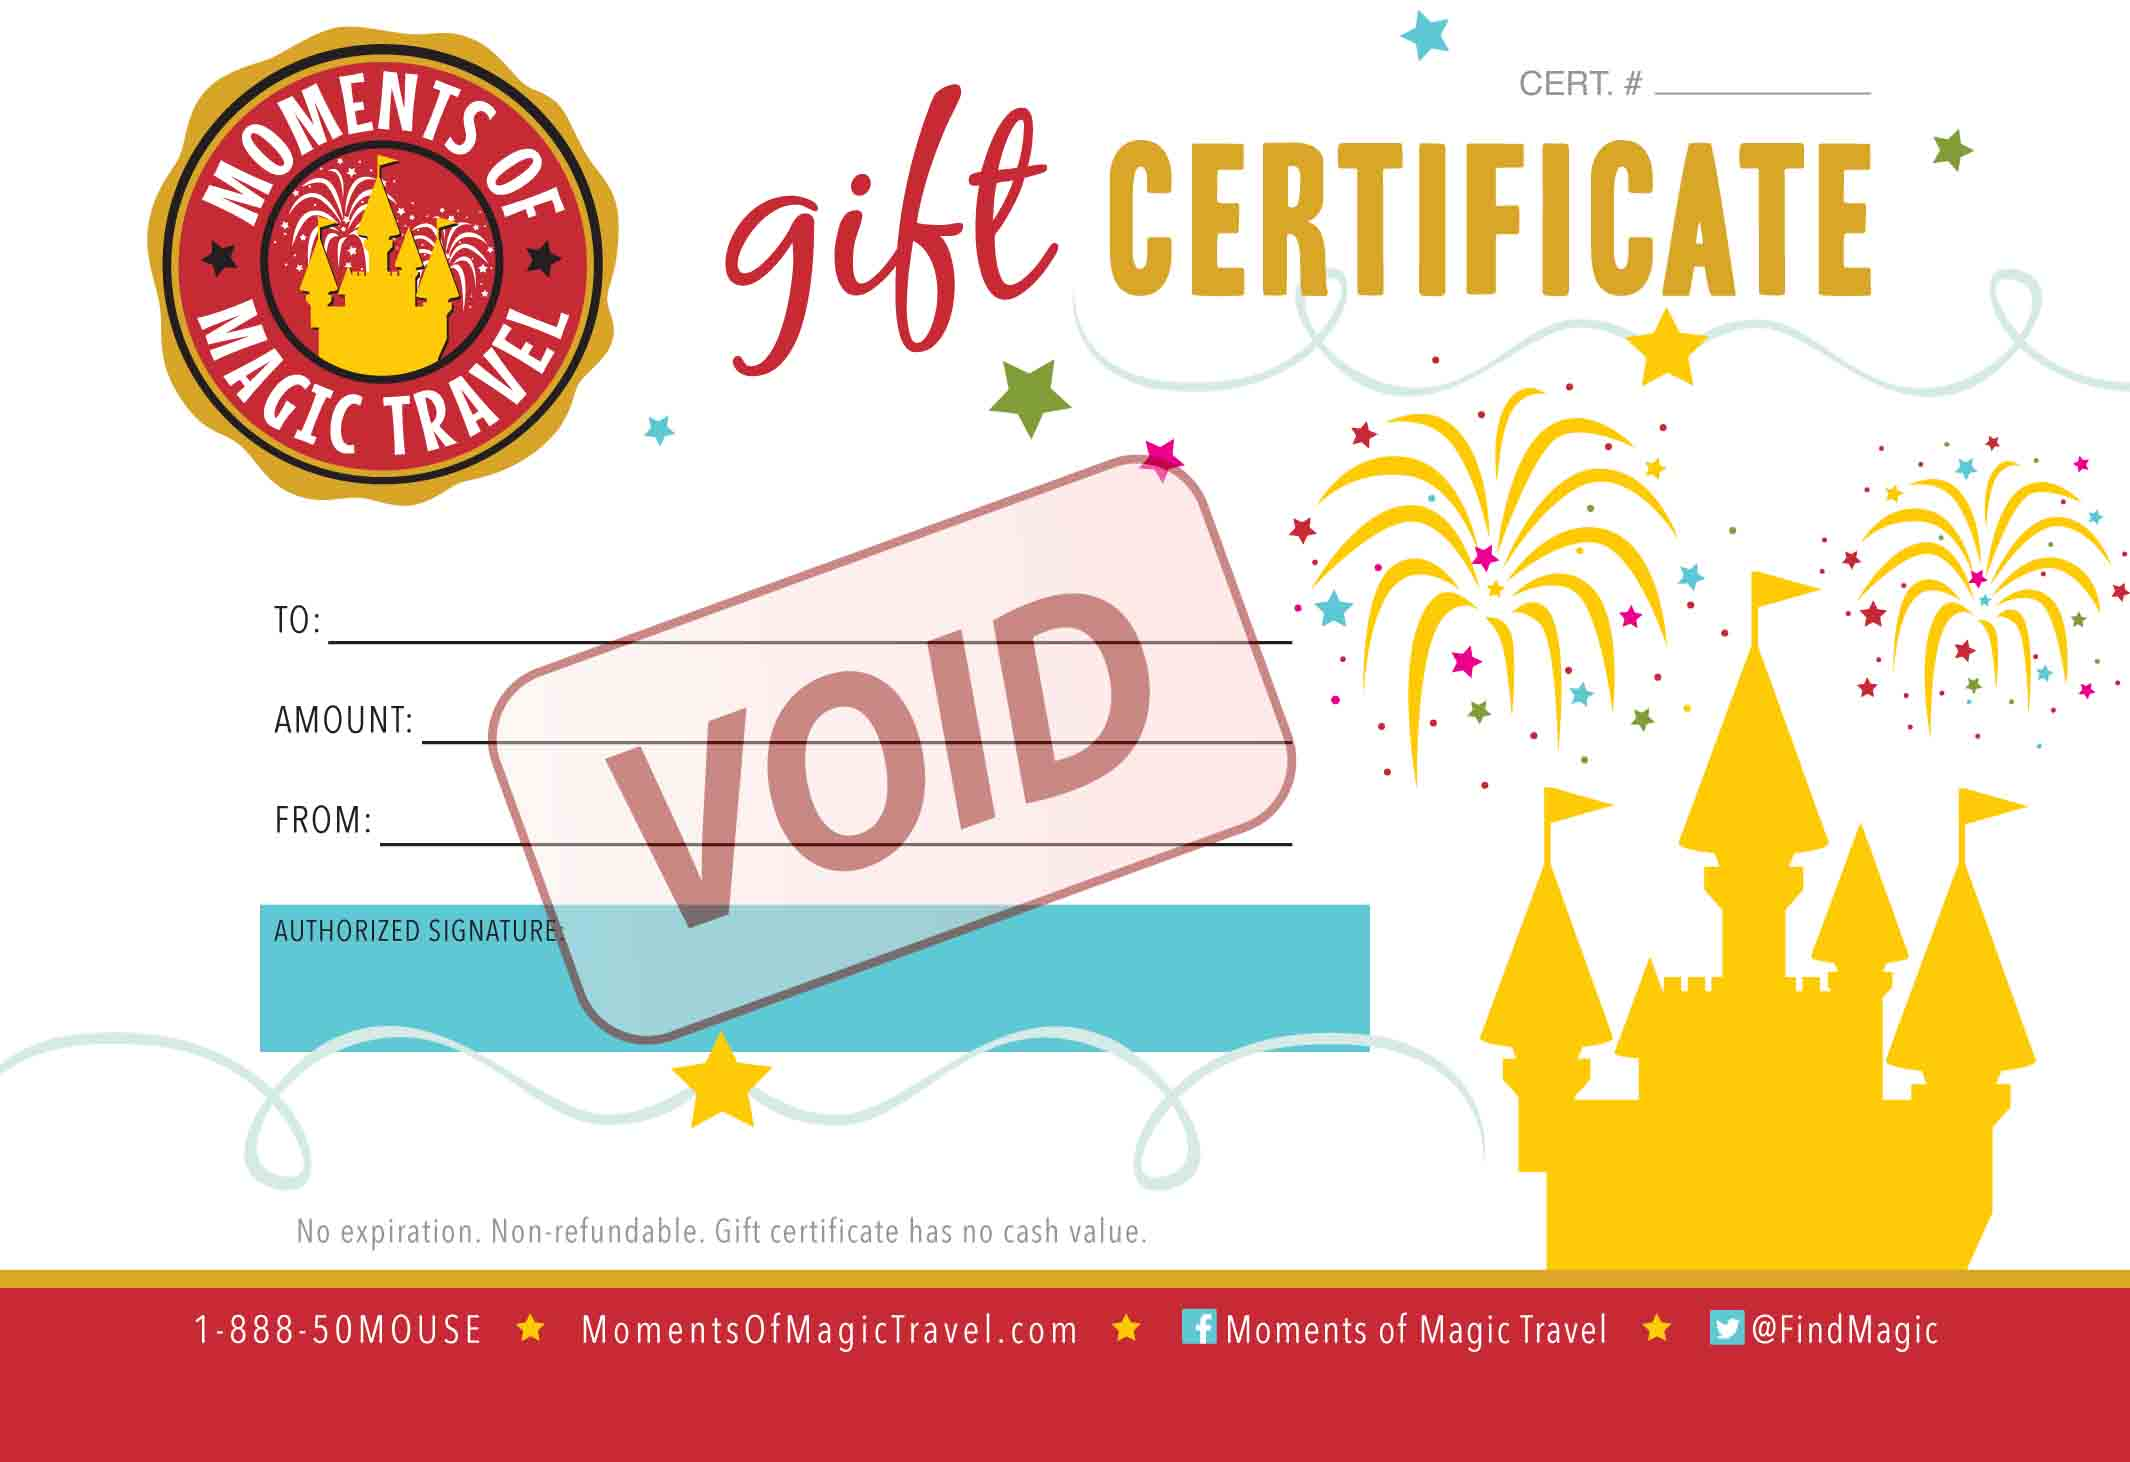 Moments of magic travel authorized disney vacation planner giftcertificatesample yelopaper Choice Image